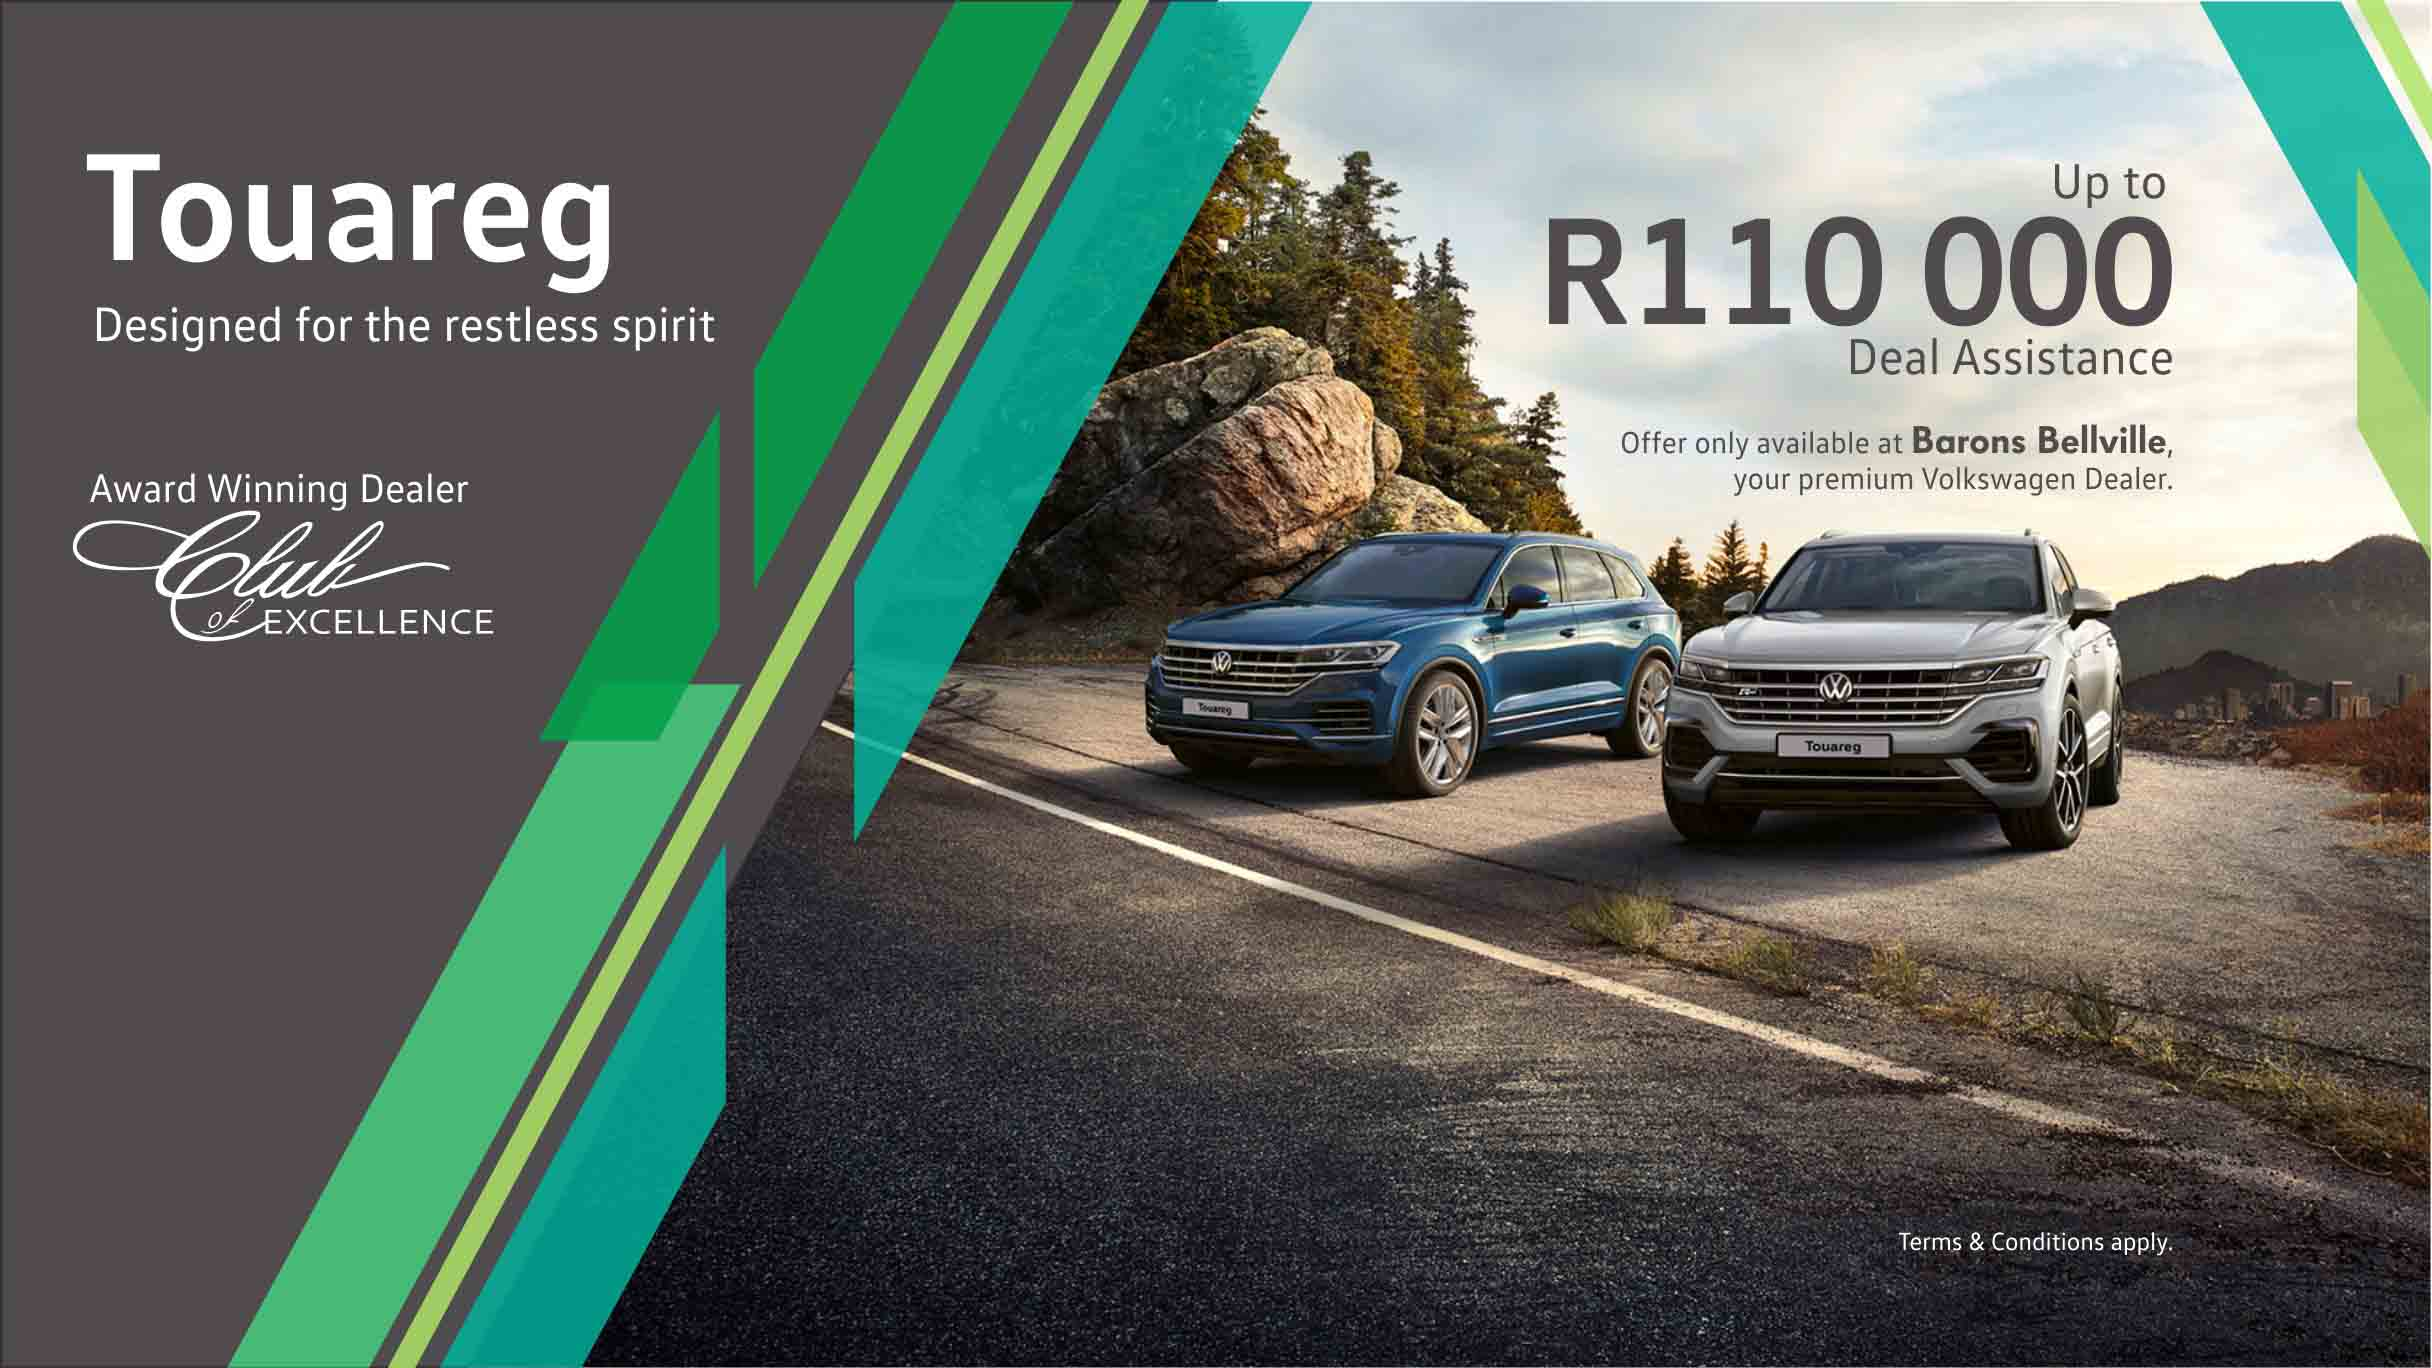 VW Touareg offer at Barons Bellville